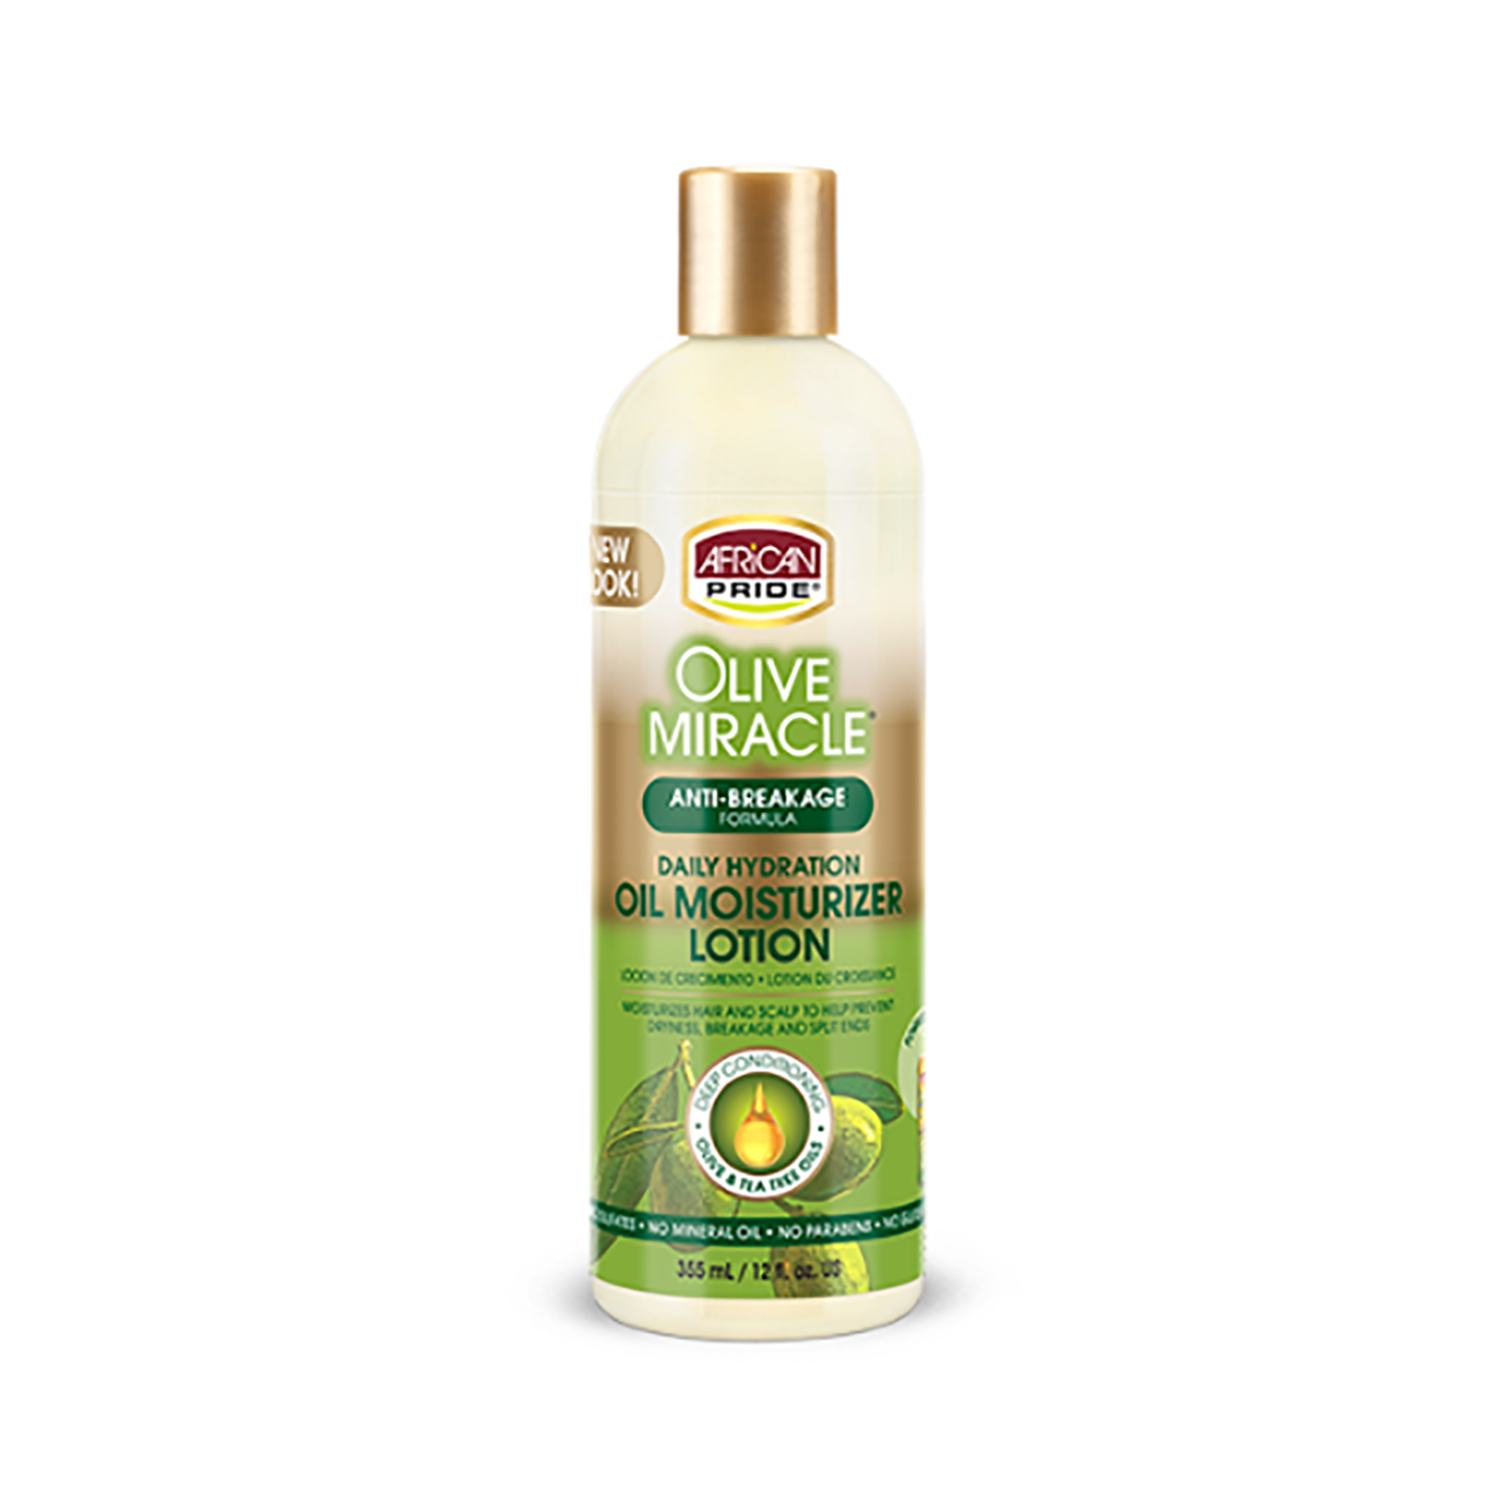 Africanpride Olive Miracle Moisturizer Lotion Decleor Hydration Starter Kit: Cleansing Milk 75ml, Tonifying Lotion 75ml, Hydrafloral Crm 15ml, Neroli Serum 5ml, Neroi